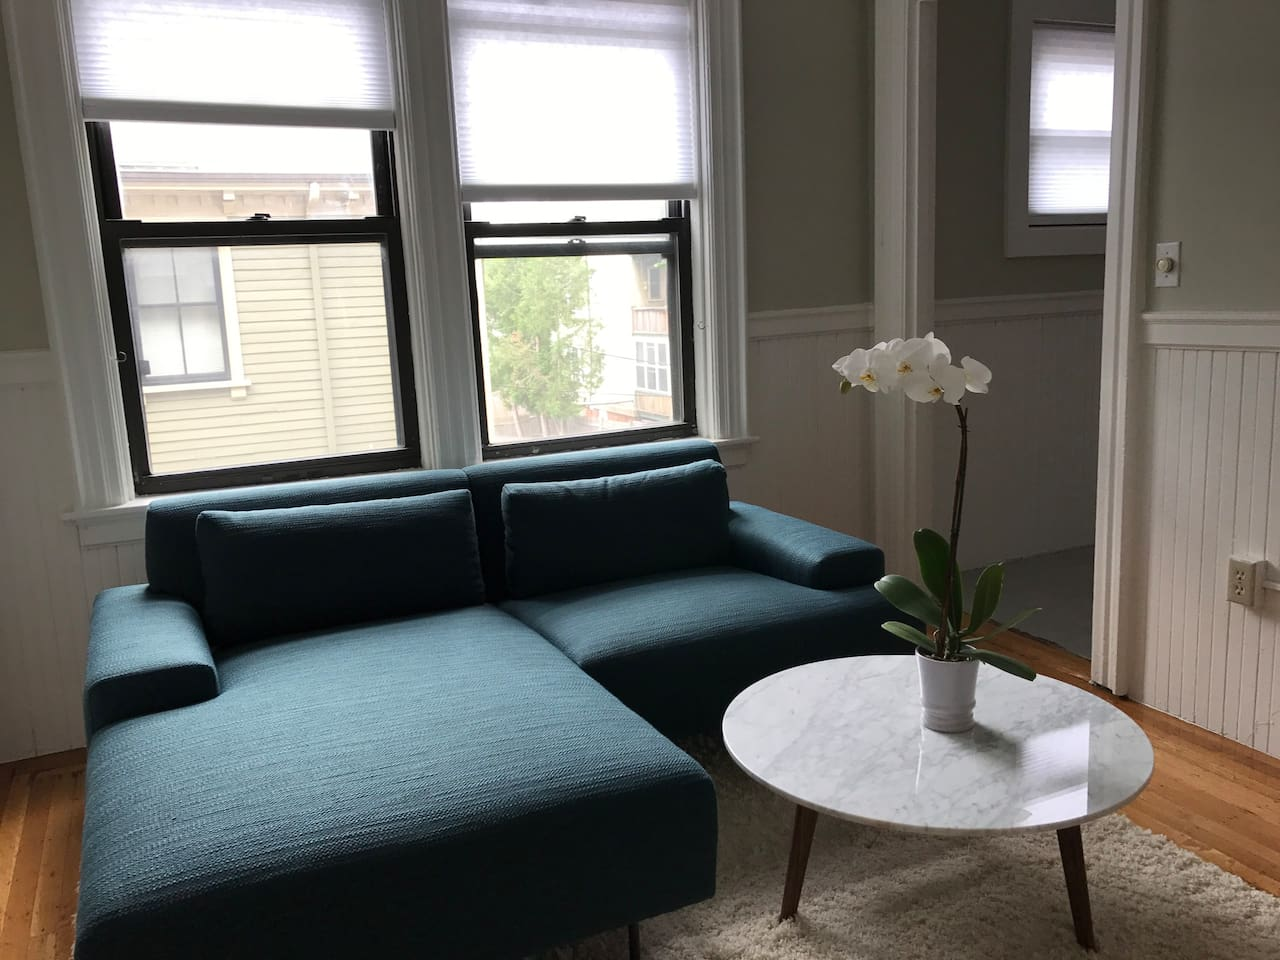 Living room with new West Elm and Article furniture